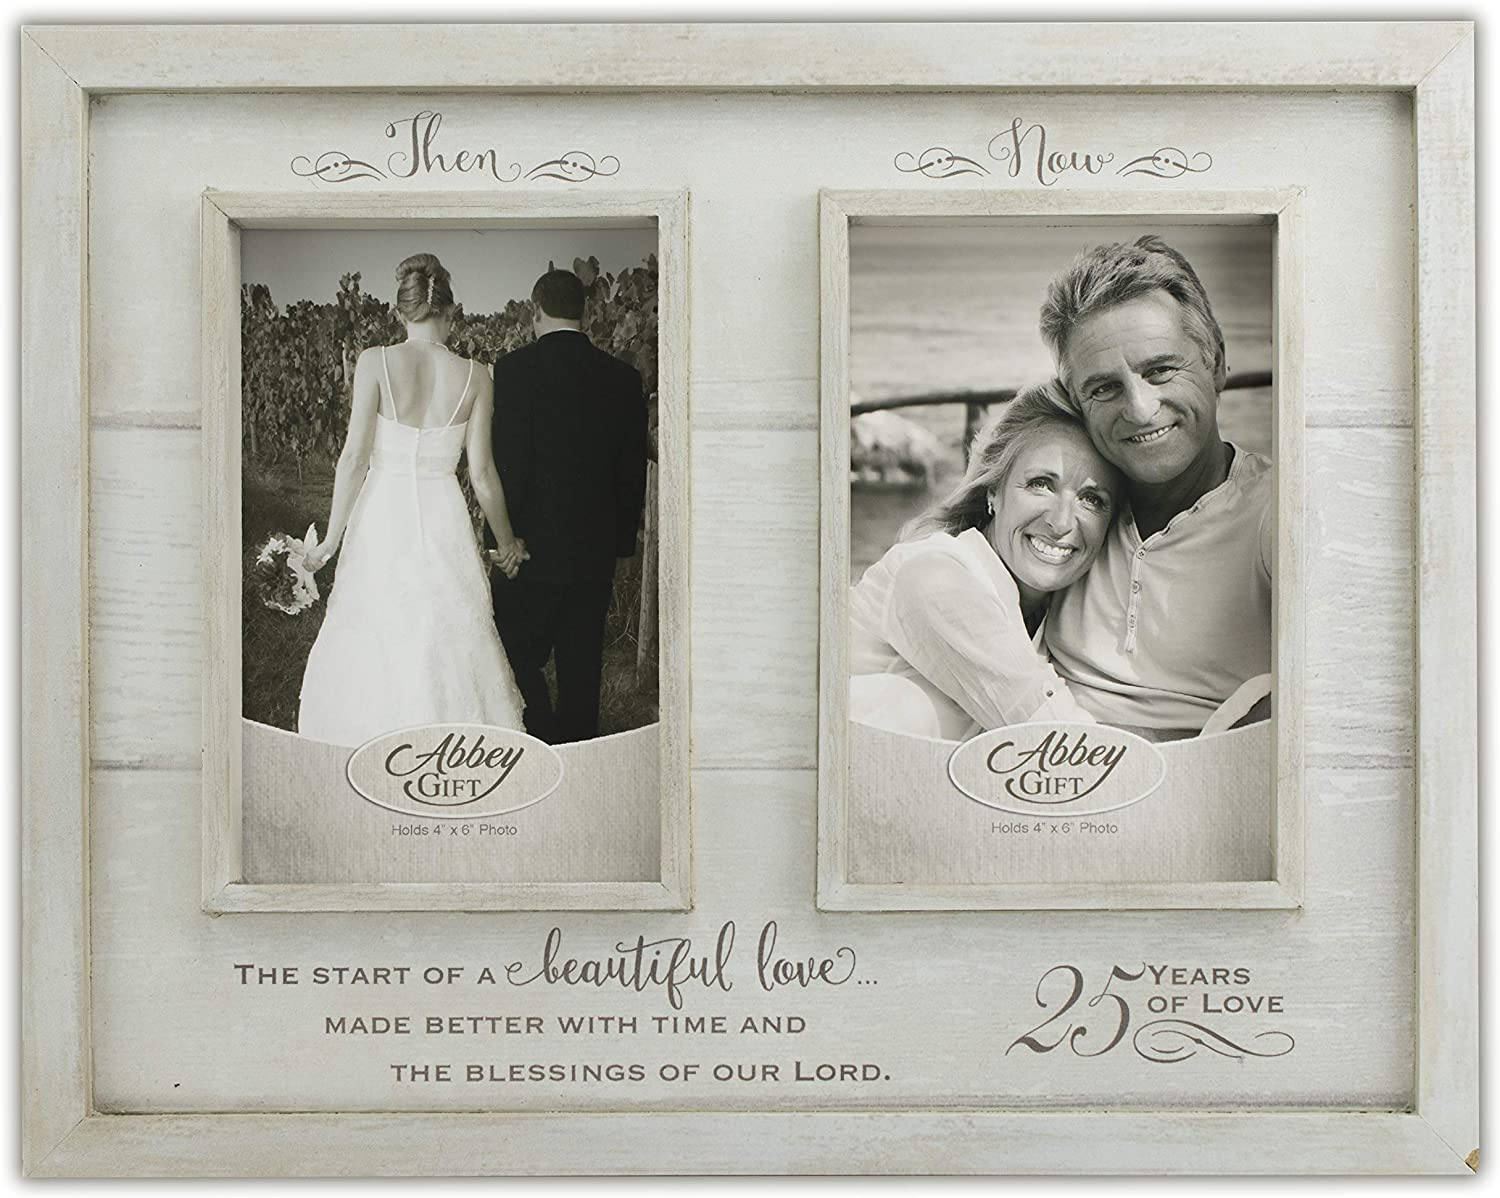 Abbey Gift Then /& Now 25Th Anniversary Wood Frame 12 x 9.5 Multicolor